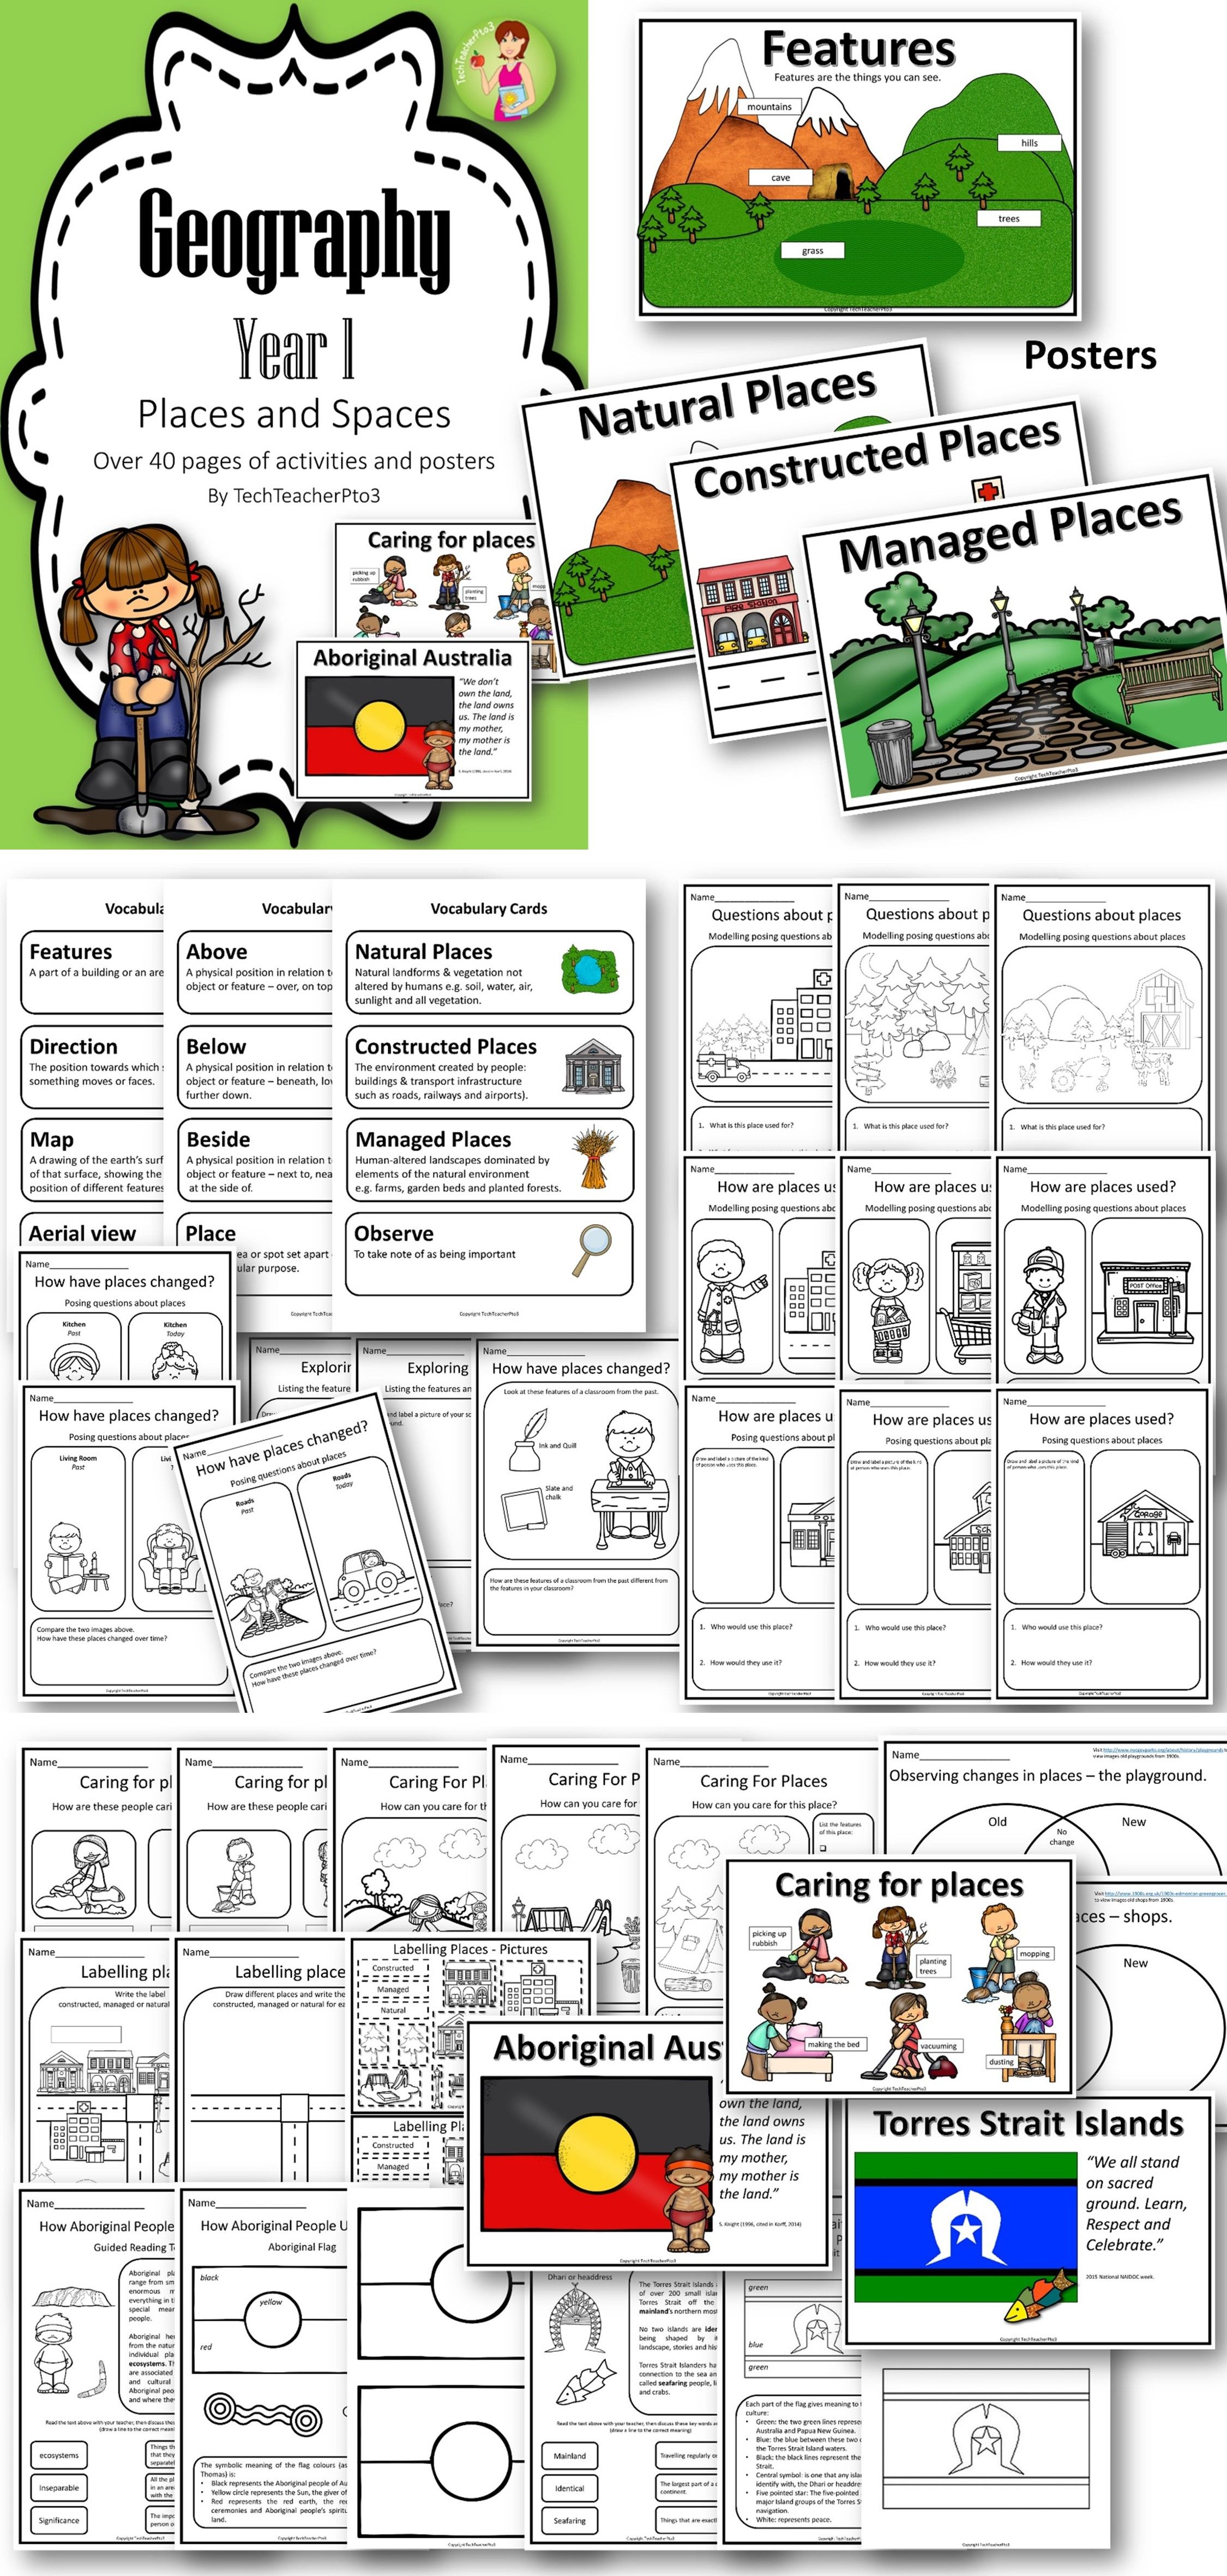 worksheet Geographical Features Worksheet geography unit year 1 places and spaces caring for natural managed